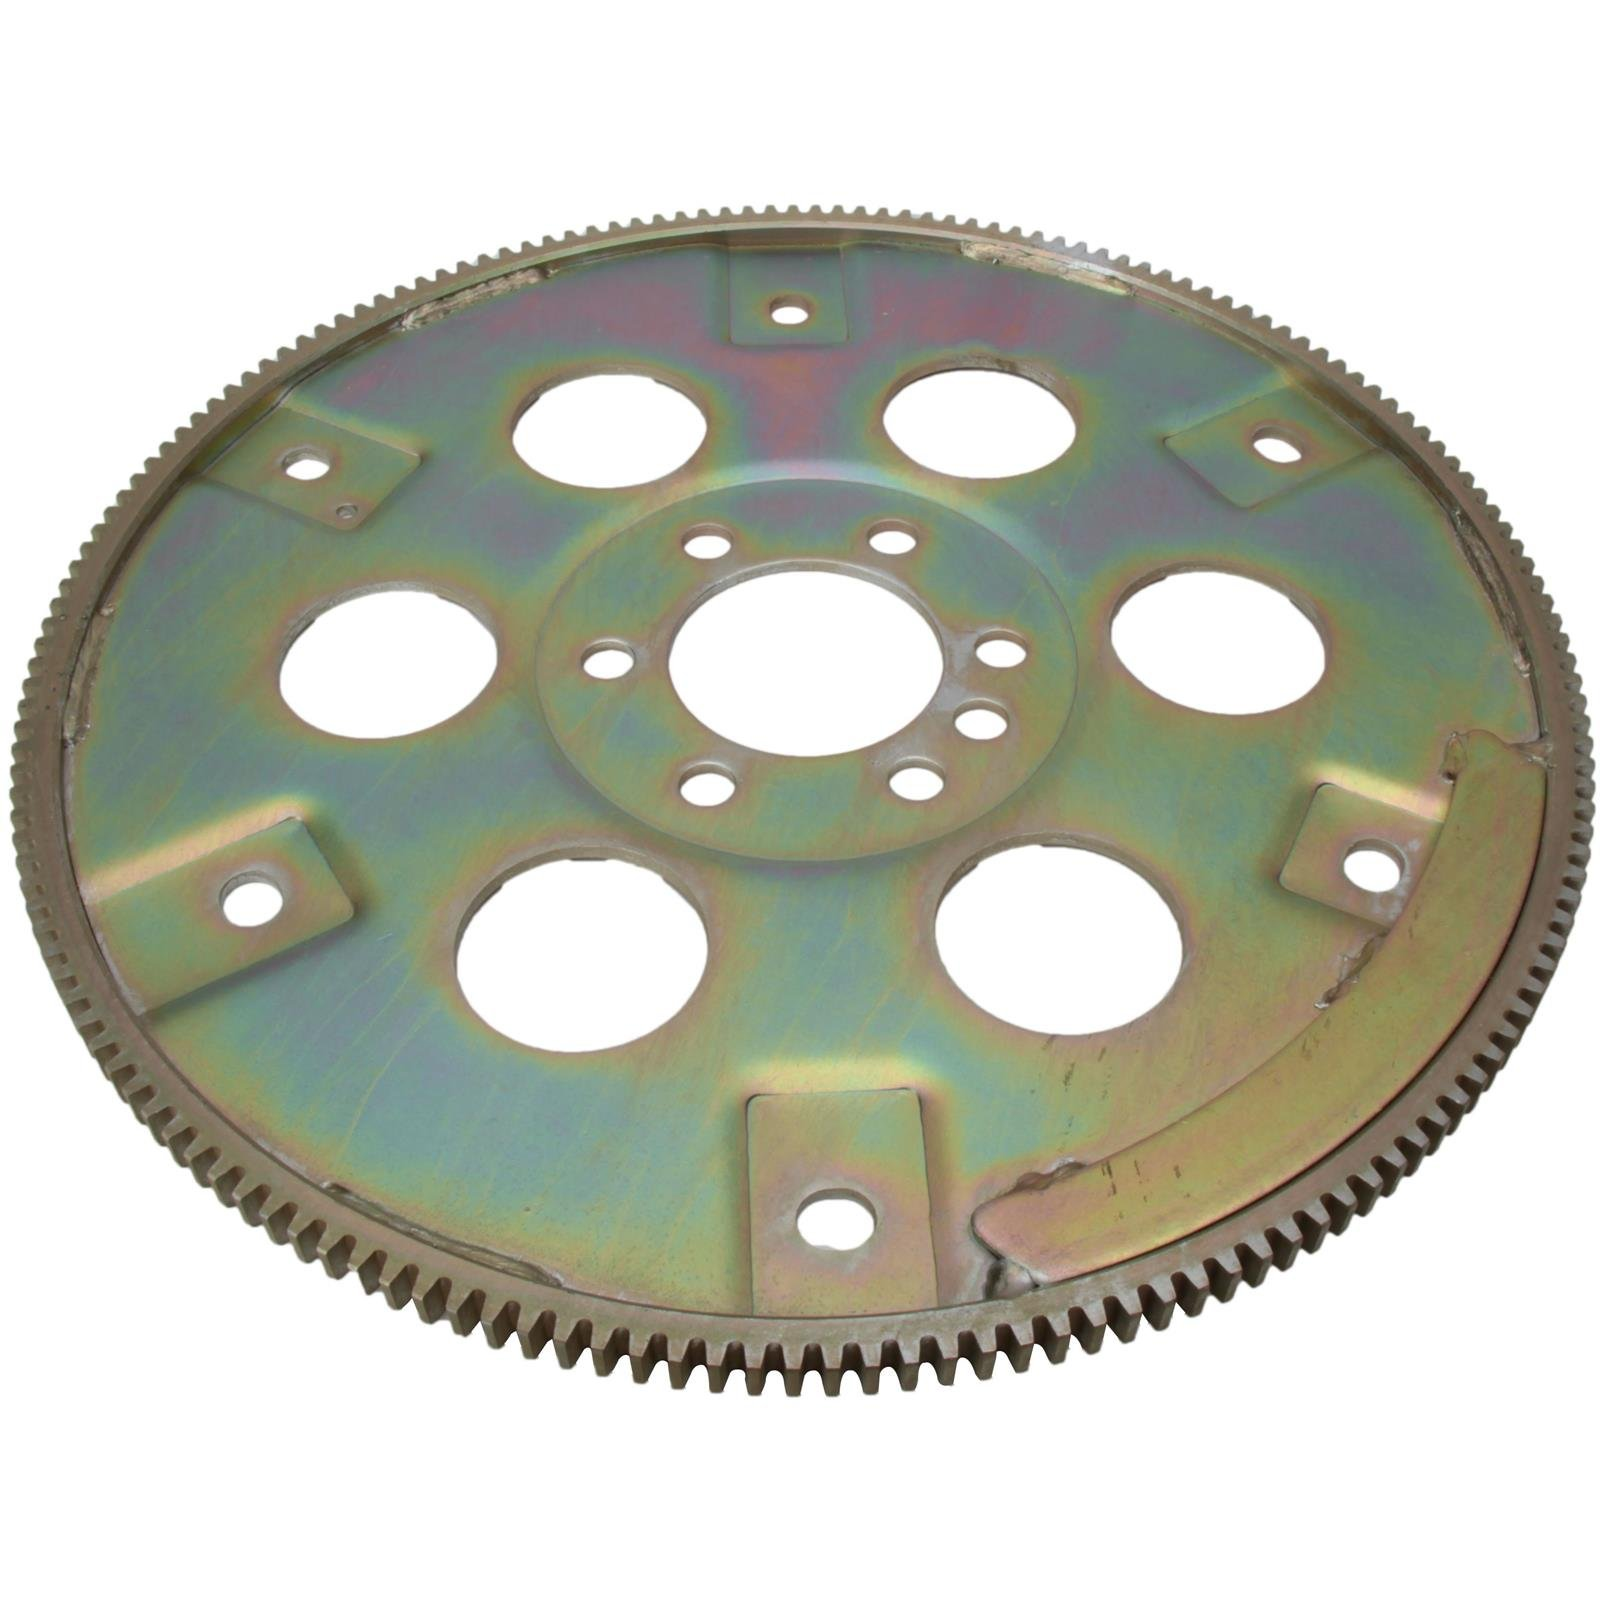 168 Tooth SFI Flexplate, Fits Chevy 2-piece Rear Main Seal V8